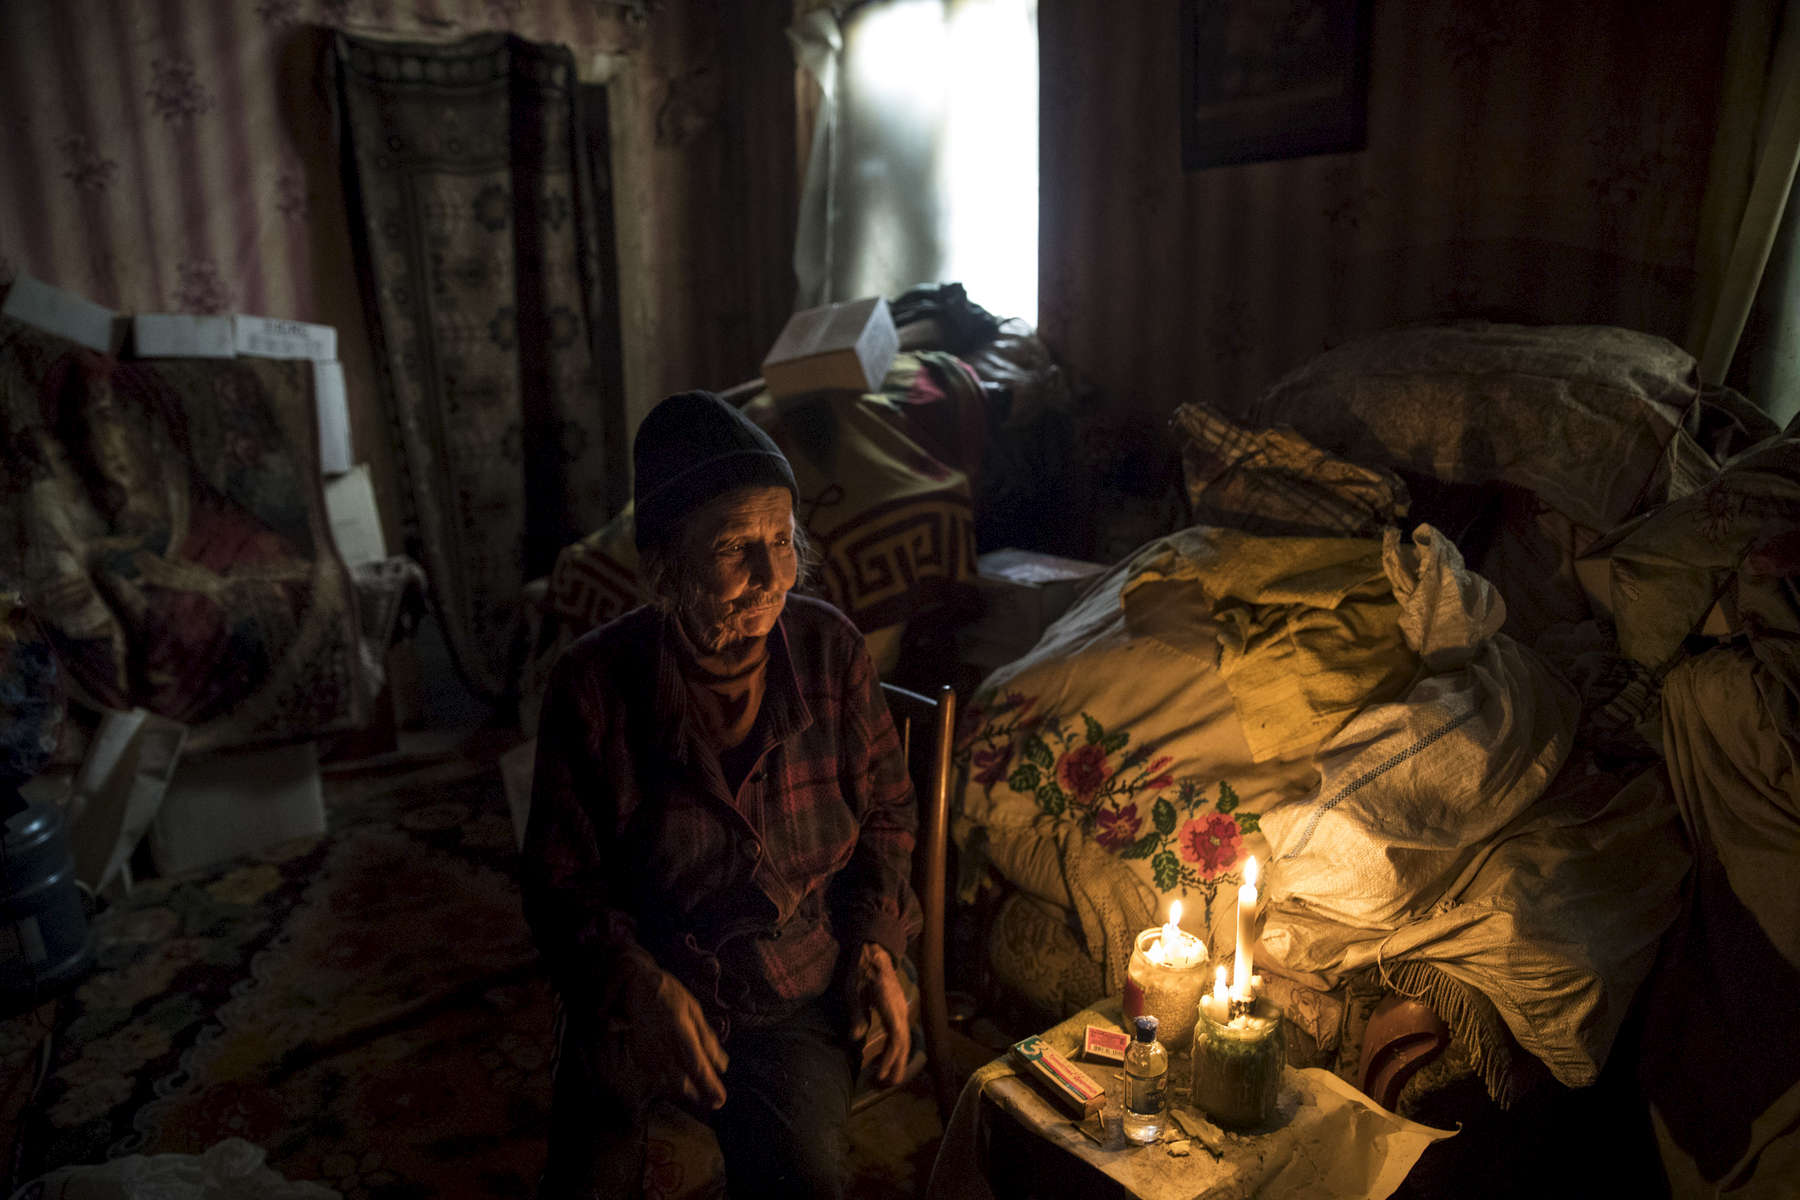 Opytne' Eastern Ukraine:  Mariya Gorpynych, age 76, lives alone. She speaks with tears in her eyes while talking about the death of her son. Victor,48 was killed due to the war in 2016, he was fatally injured by shelling that hit the home. He died in her hands. Her husband, died in the same year from a heart attack  from extreme stress of living too close to the front line. Mariya refuses to leave her village because her family are buried there.{quote}I have nowhere to flee, my whole family is buried here.{quote}  {quote}I got used to the continued shelling.{quote} Opytne is a war torn village on the contact line where only 43 people are left due to the dangers.